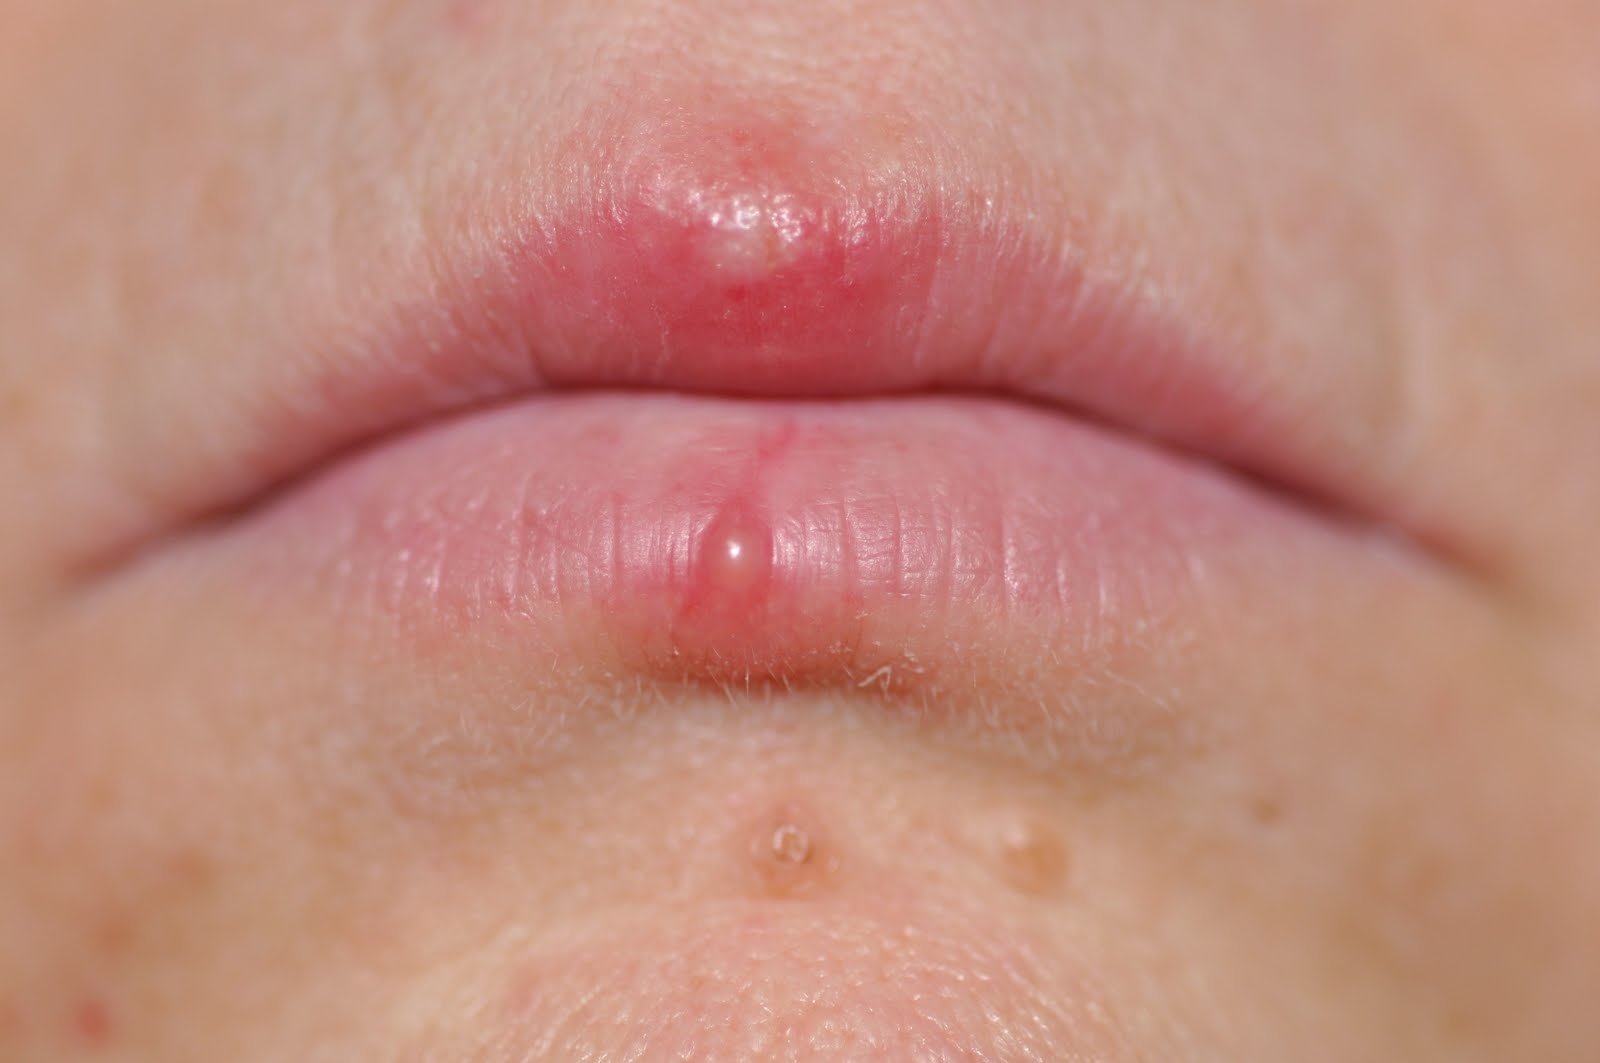 People are wondering how to get rid of cold sores overnight cold sores